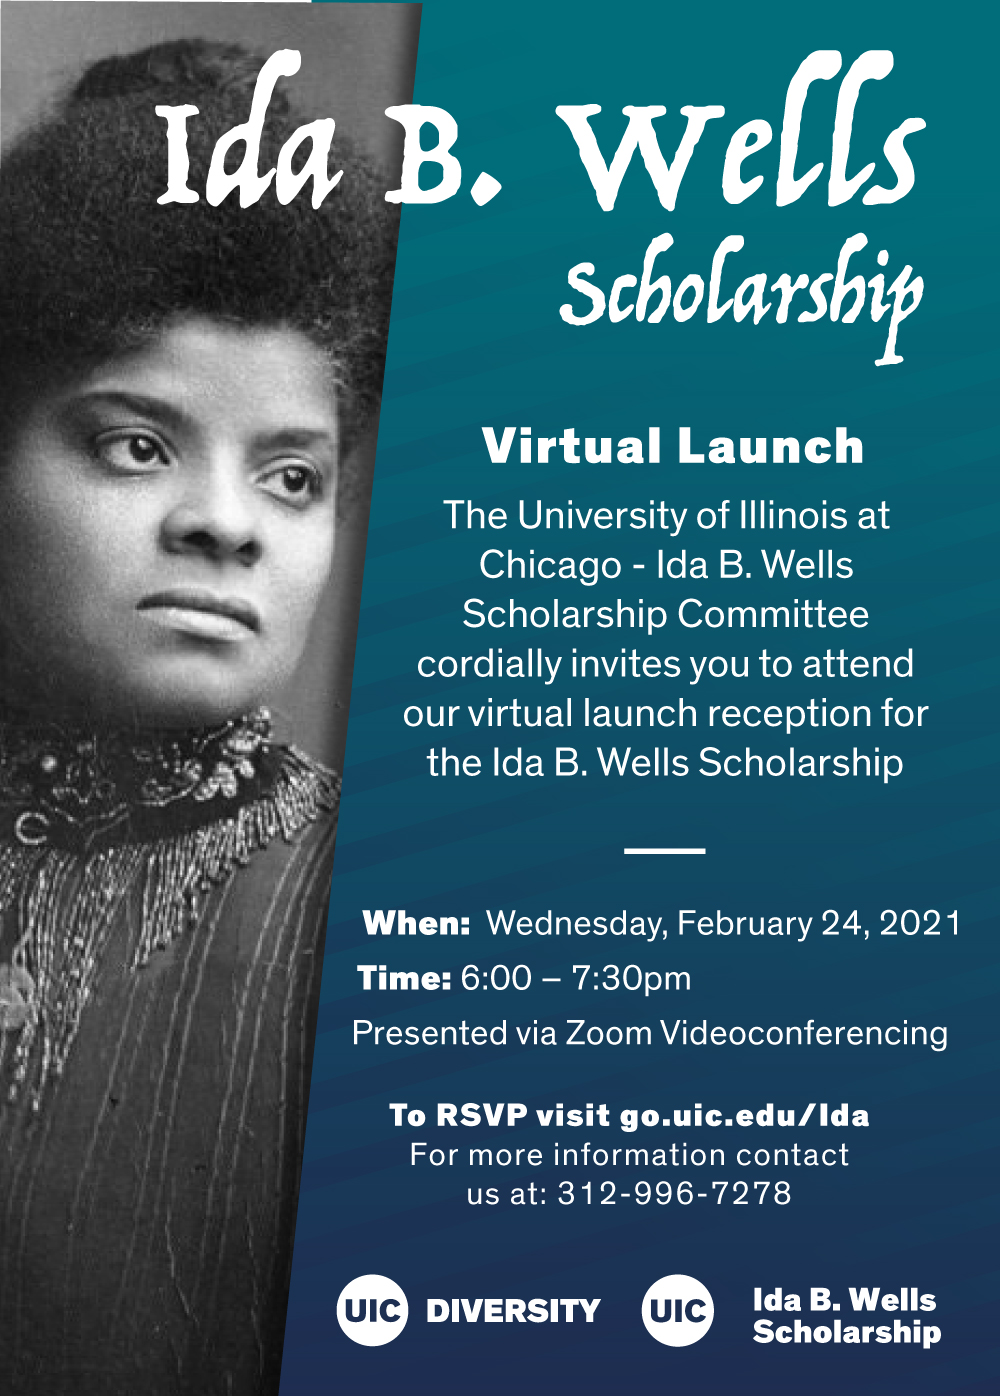 Teal background with image of Ida B Wells and text that reads Ida B. Wells Scholarship Virtual Launch